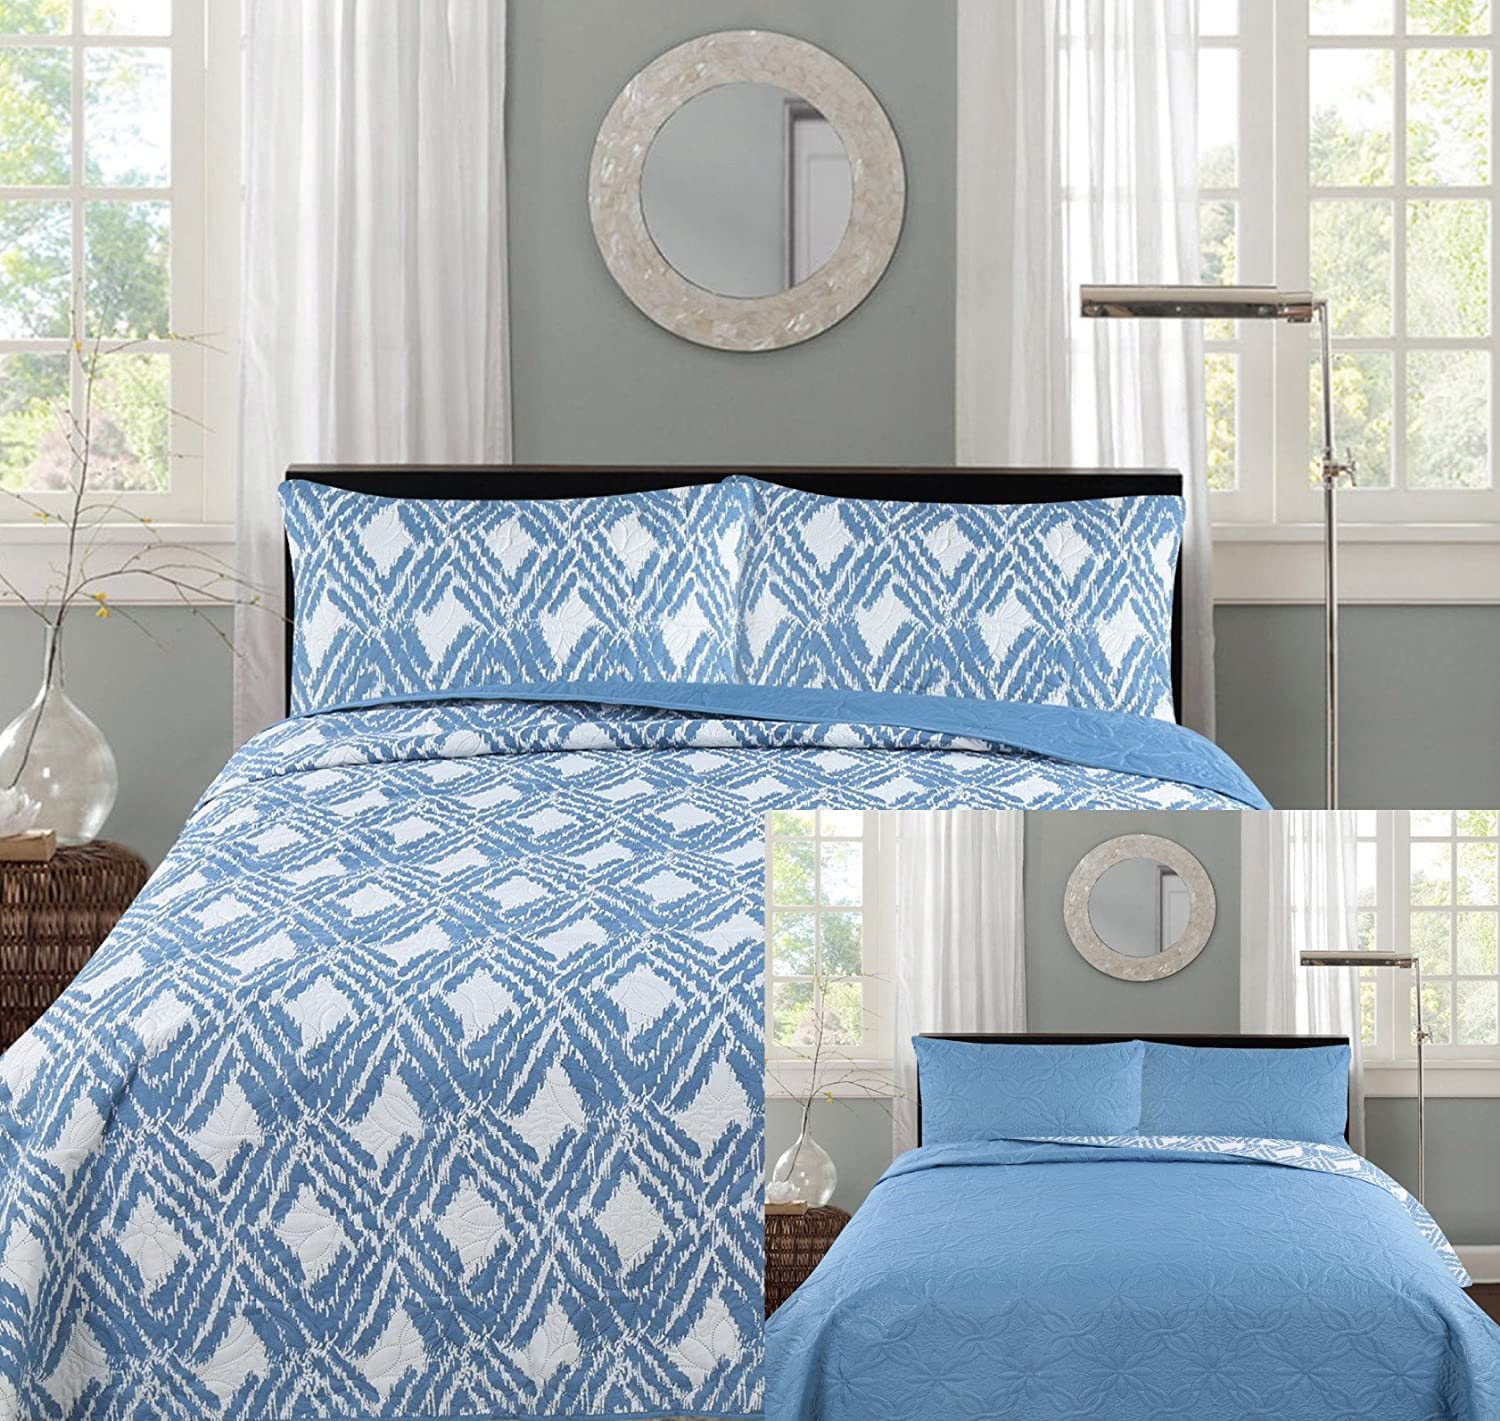 all american collection comforters with more – ease bedding with style - reversible modern floral bedspread coverlet (king